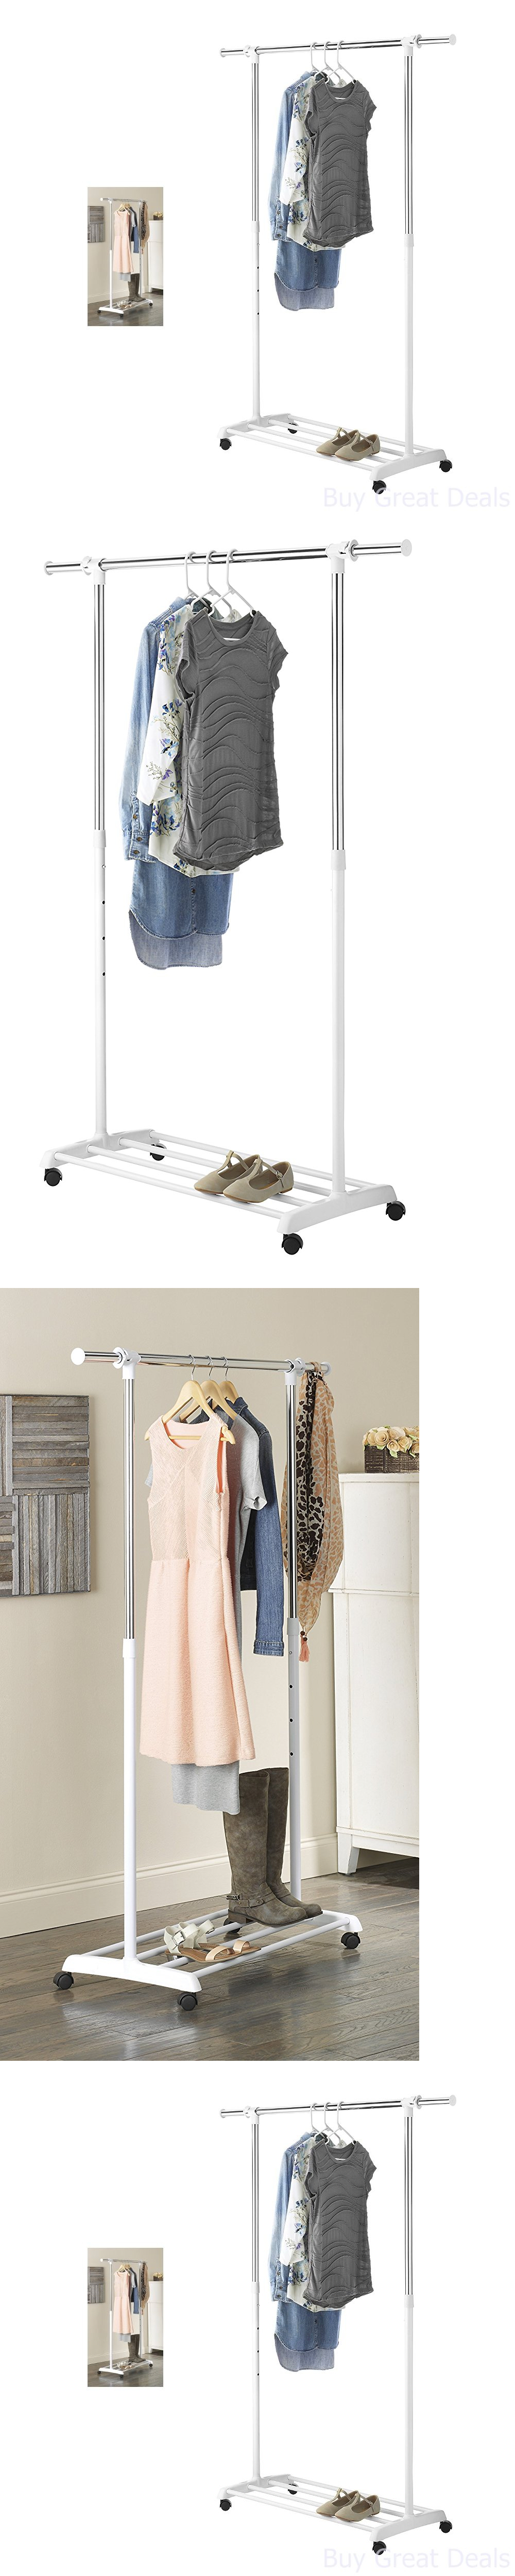 Captivating Garment Racks 166325: Whitmor Deluxe Adjustable Garment Rack, With Wheels  Adjustable Height New